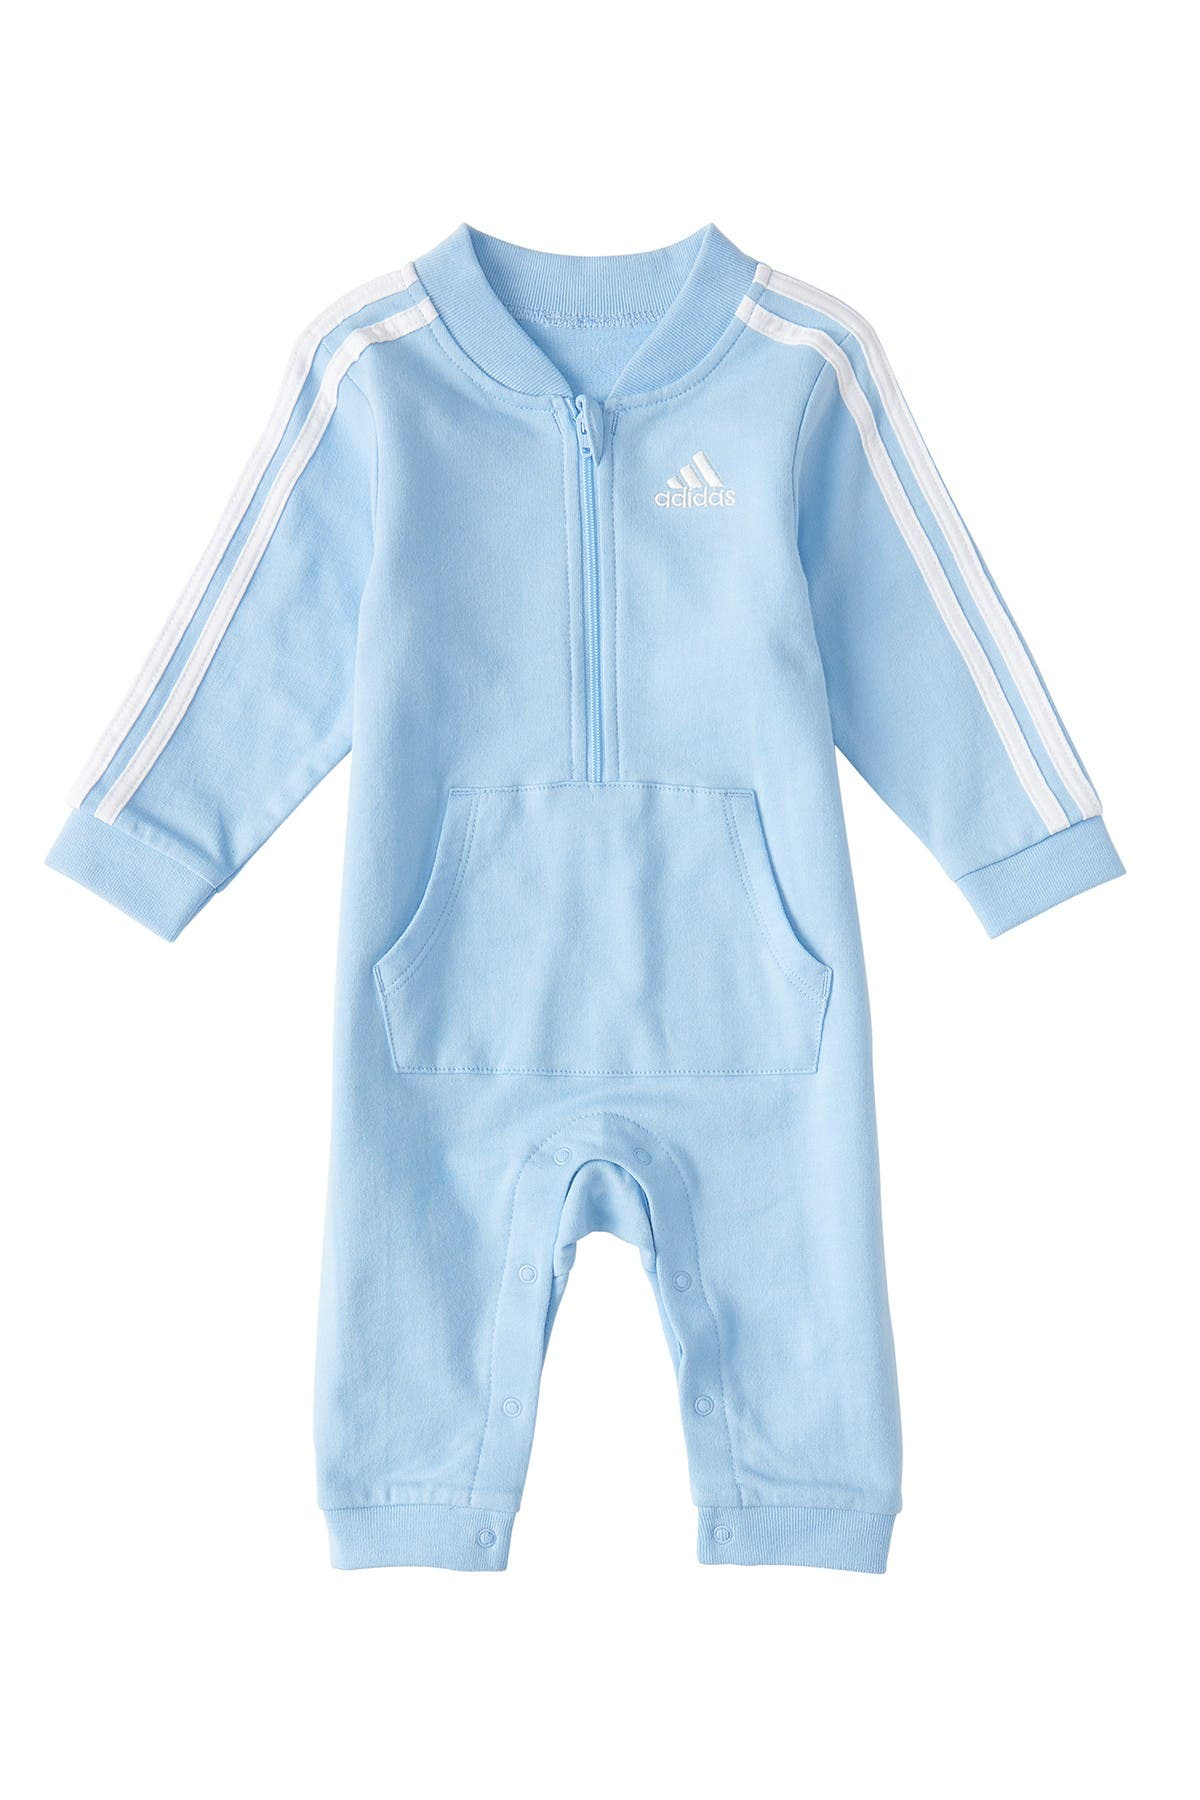 Image of adidas Tracksuit Coverall